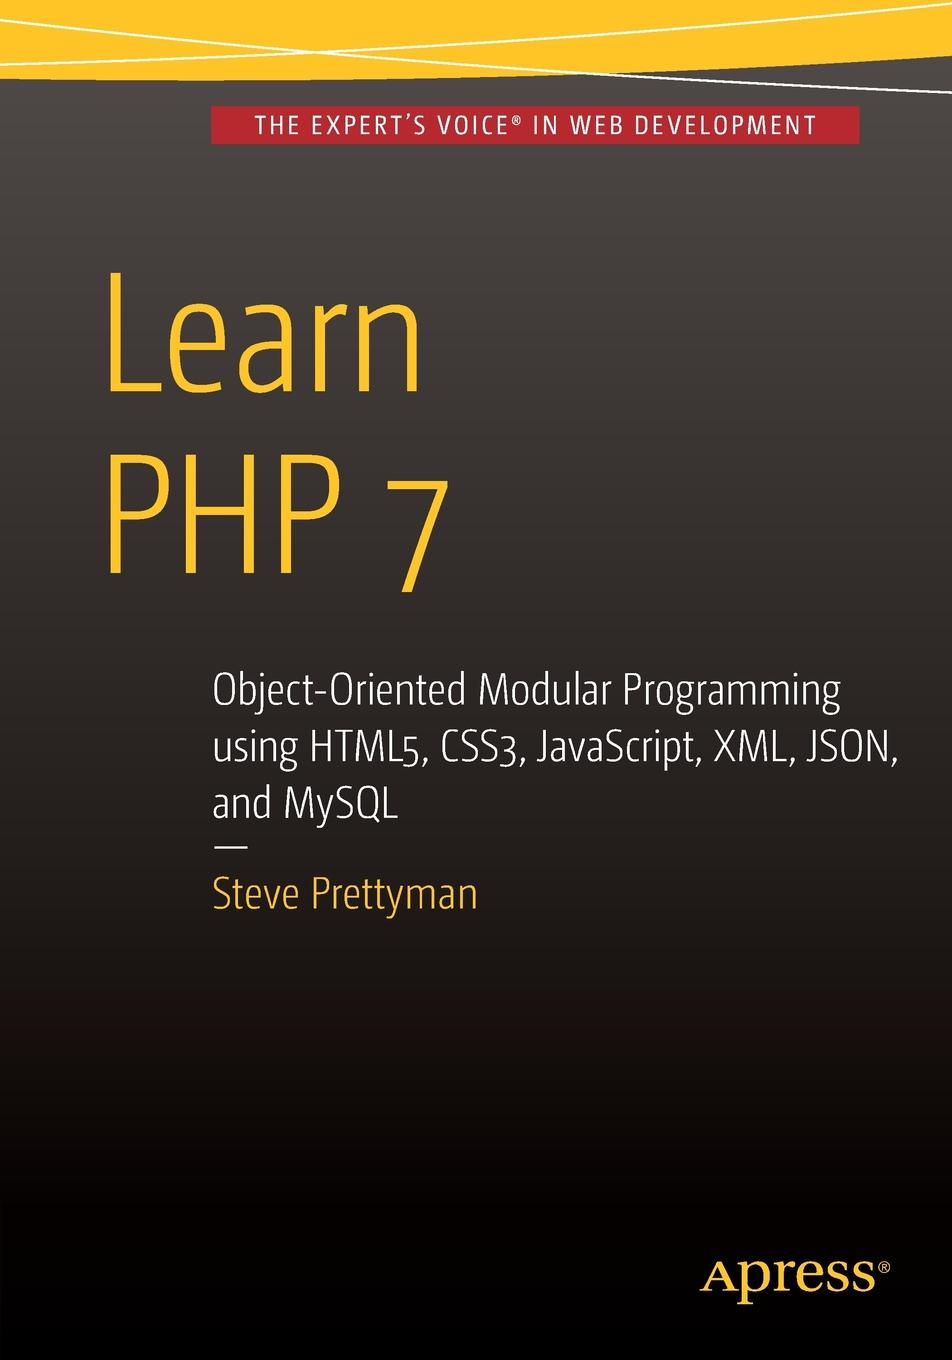 Steve Prettyman Learn PHP 7. Object Oriented Modular Programming using HTML5, CSS3, JavaScript, XML, JSON, and MySQL робин никсон создаем динамические веб сайты с помощью php mysql javascript css и html5